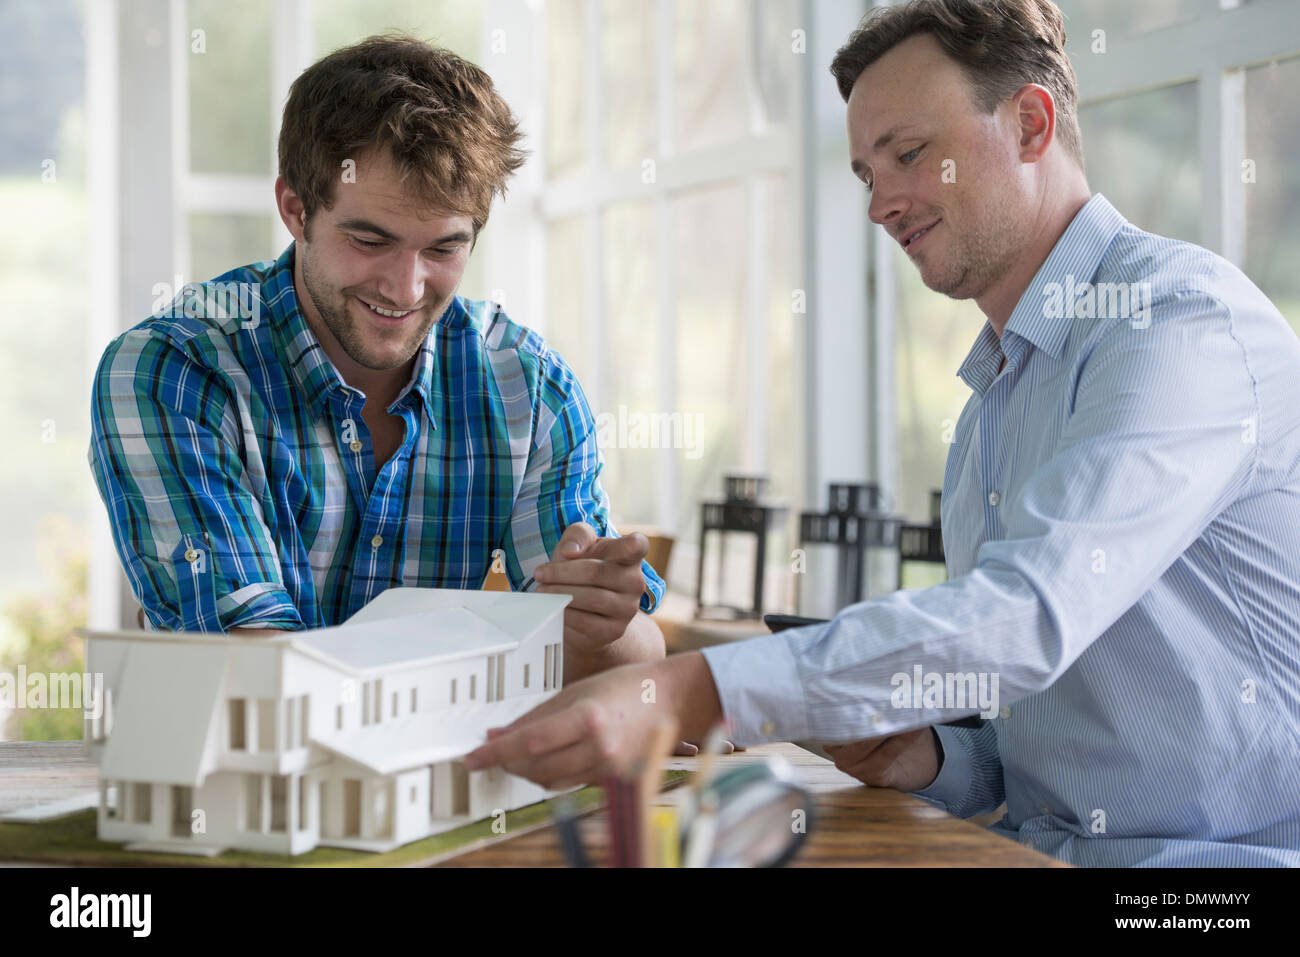 Two men looking at an architectural model of a house. - Stock Image